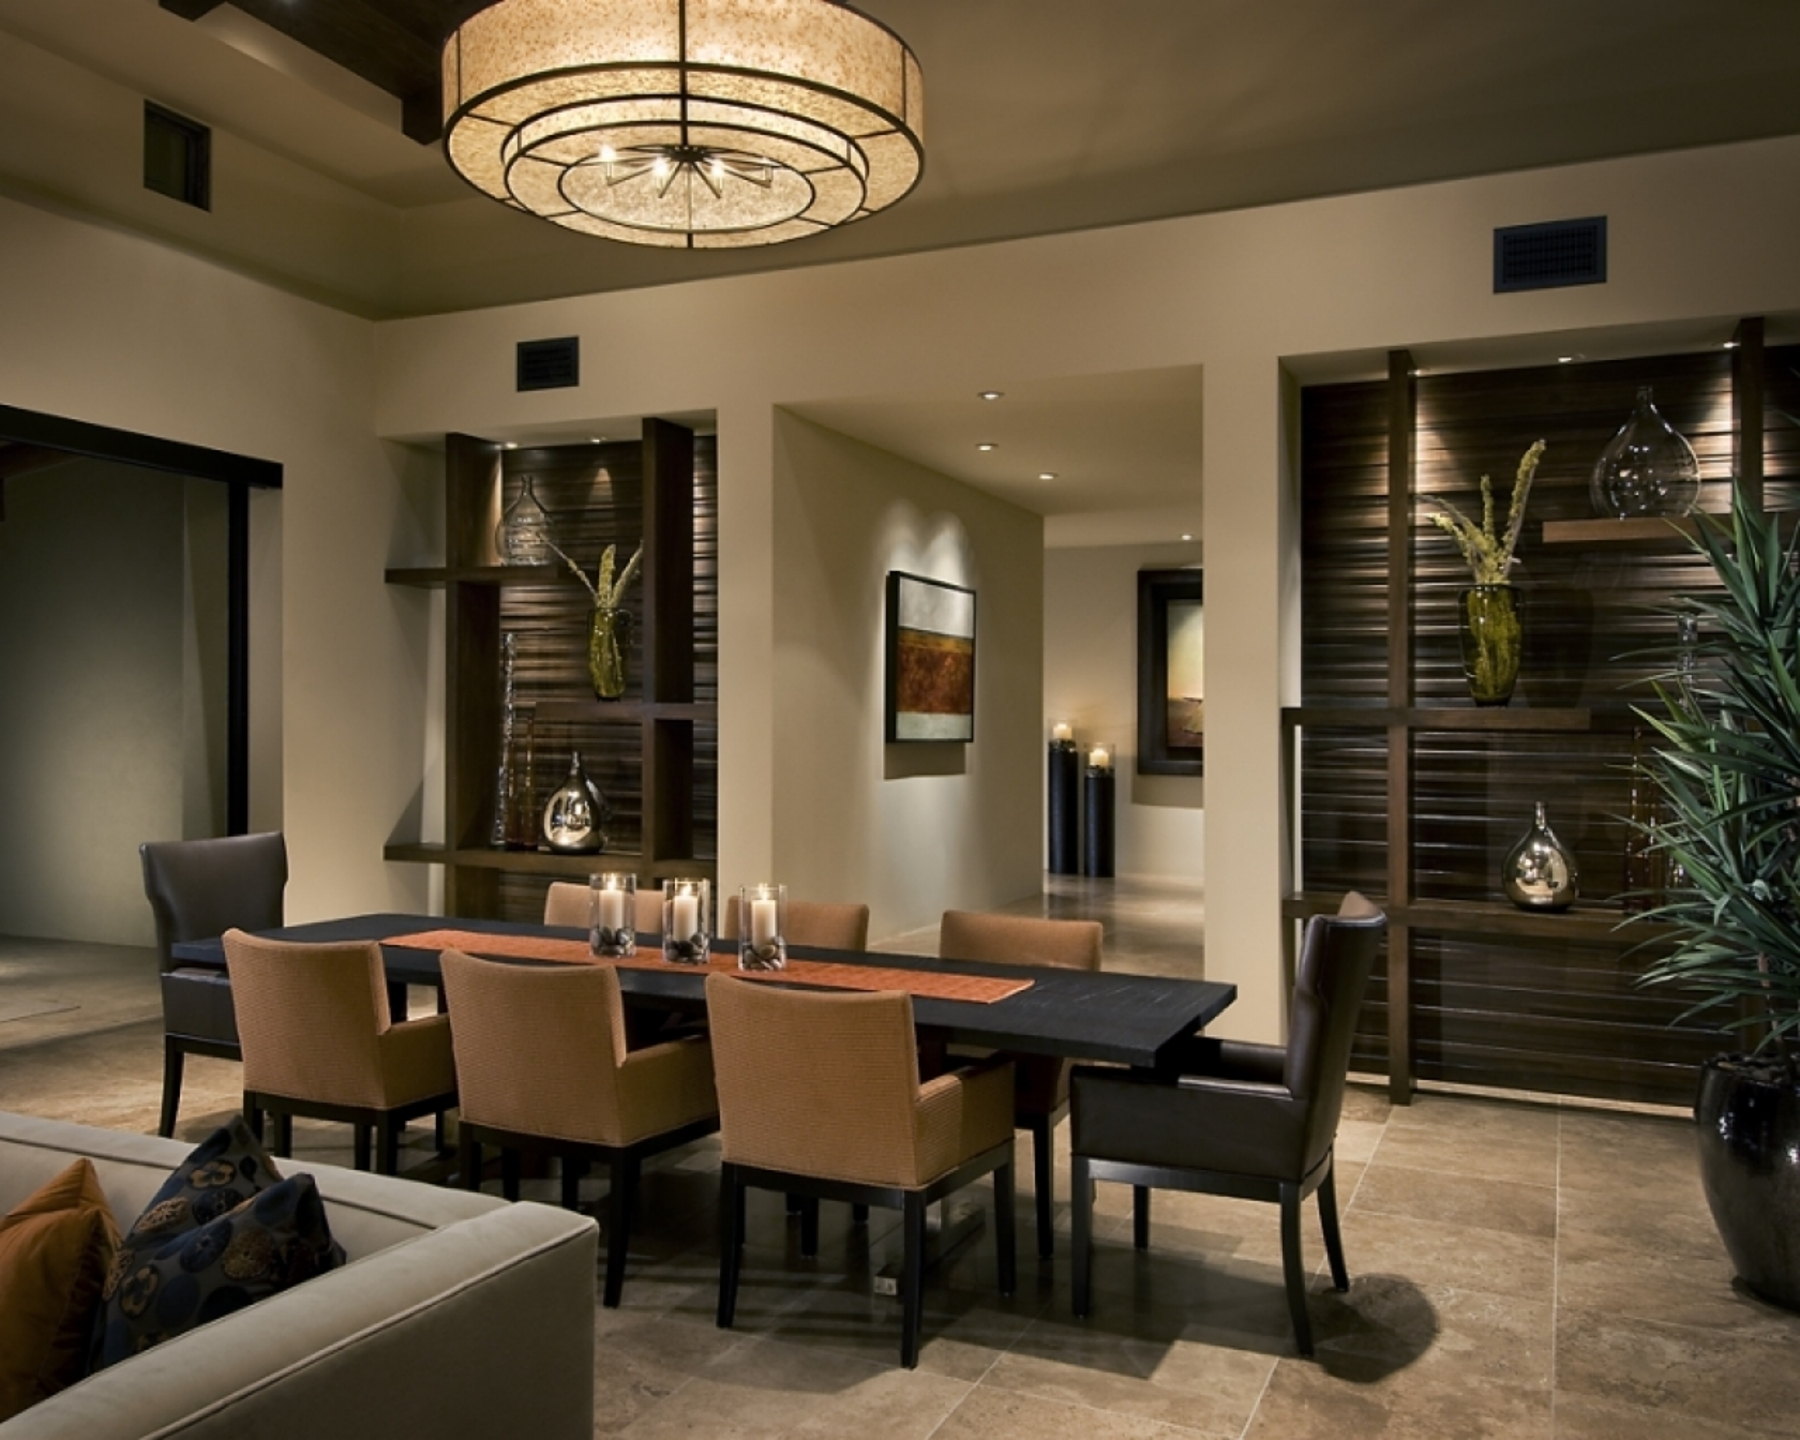 10 Ideas On How To Make Your Dining Room Designs Look Amazing4